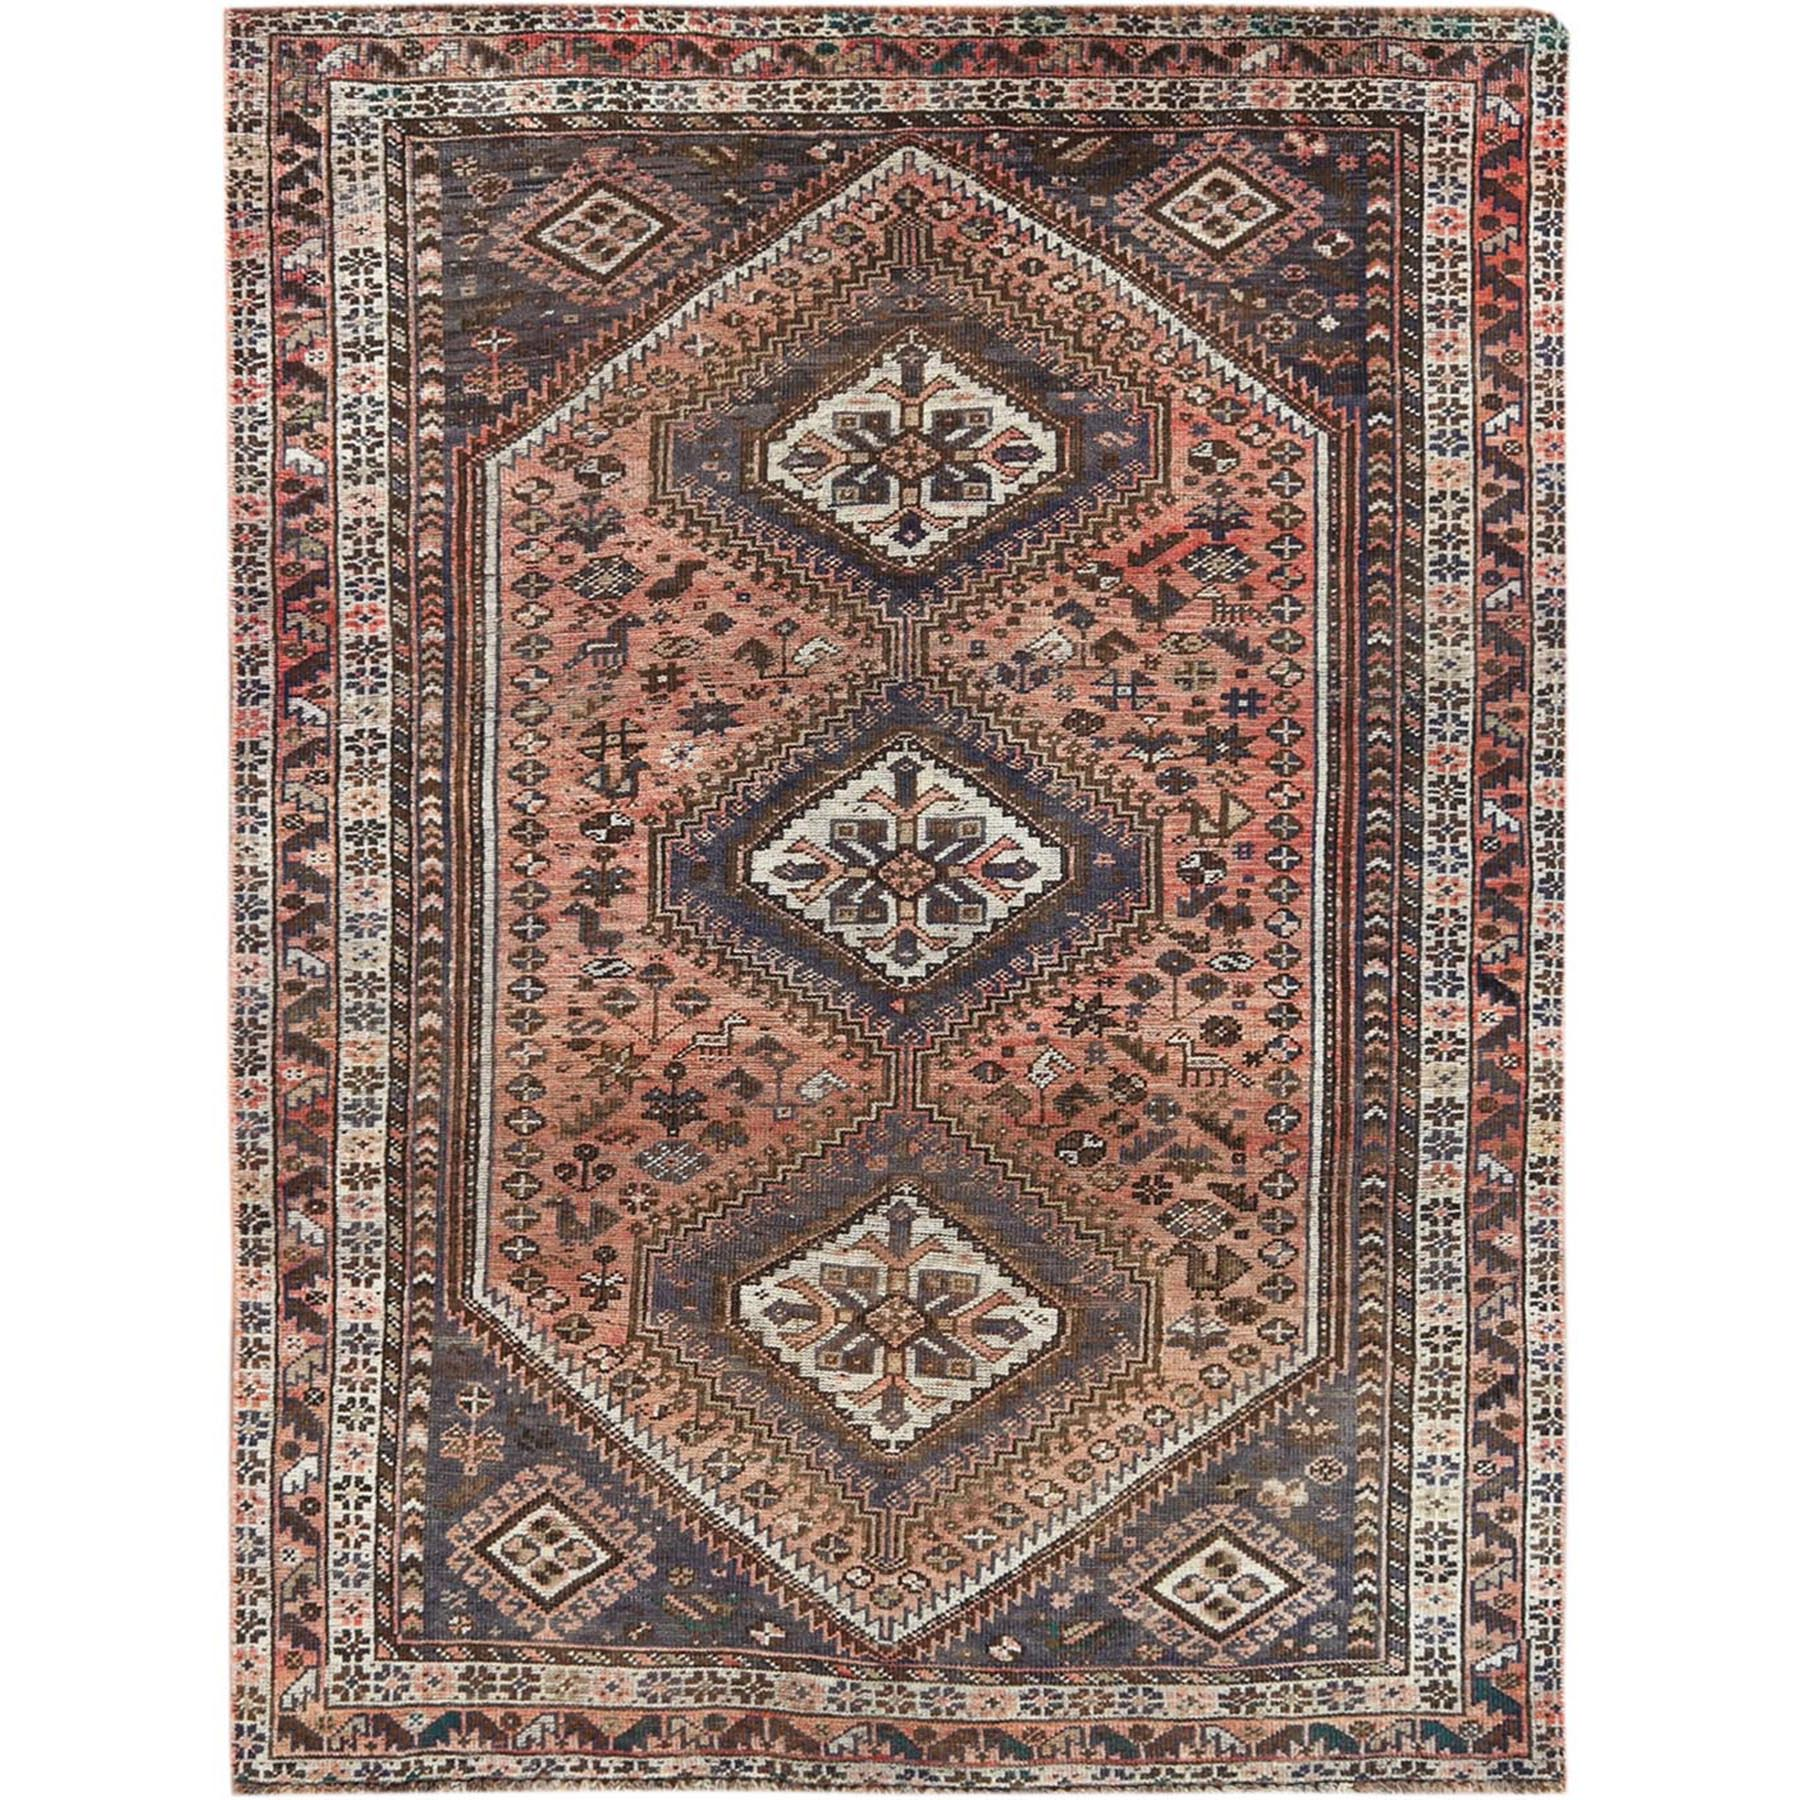 "5'2""x7'1"" Bohemian Vintage Worn Down Persian Qashqai Faded Rust Color Clean Hand Woven Natural Wool Oriental Rug"